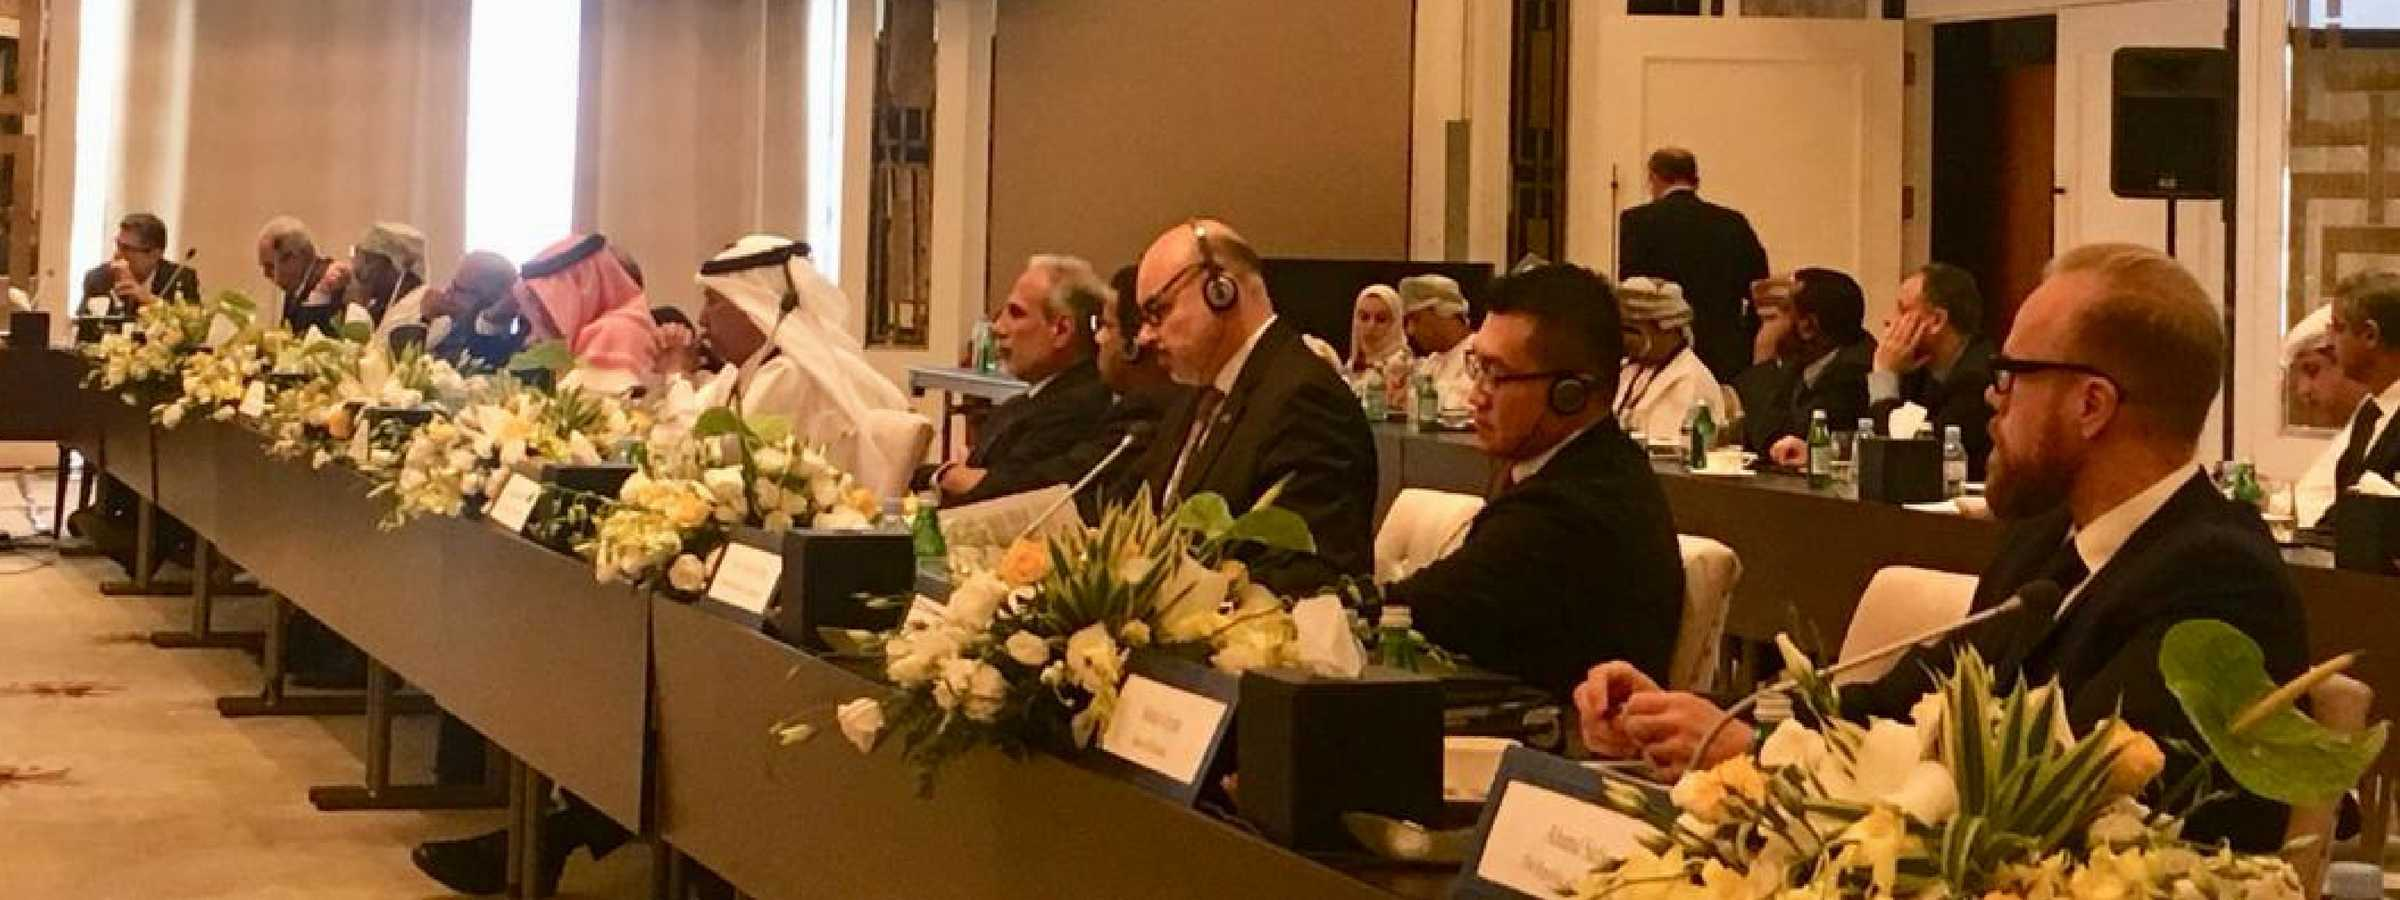 AFI Executive Director Dr. Alfred Hannig attending a high-level roundtable on the Emergence of FinTech: Opportunities and Challenges for the Arab World, 18 September 2018 in Amman, Jordan